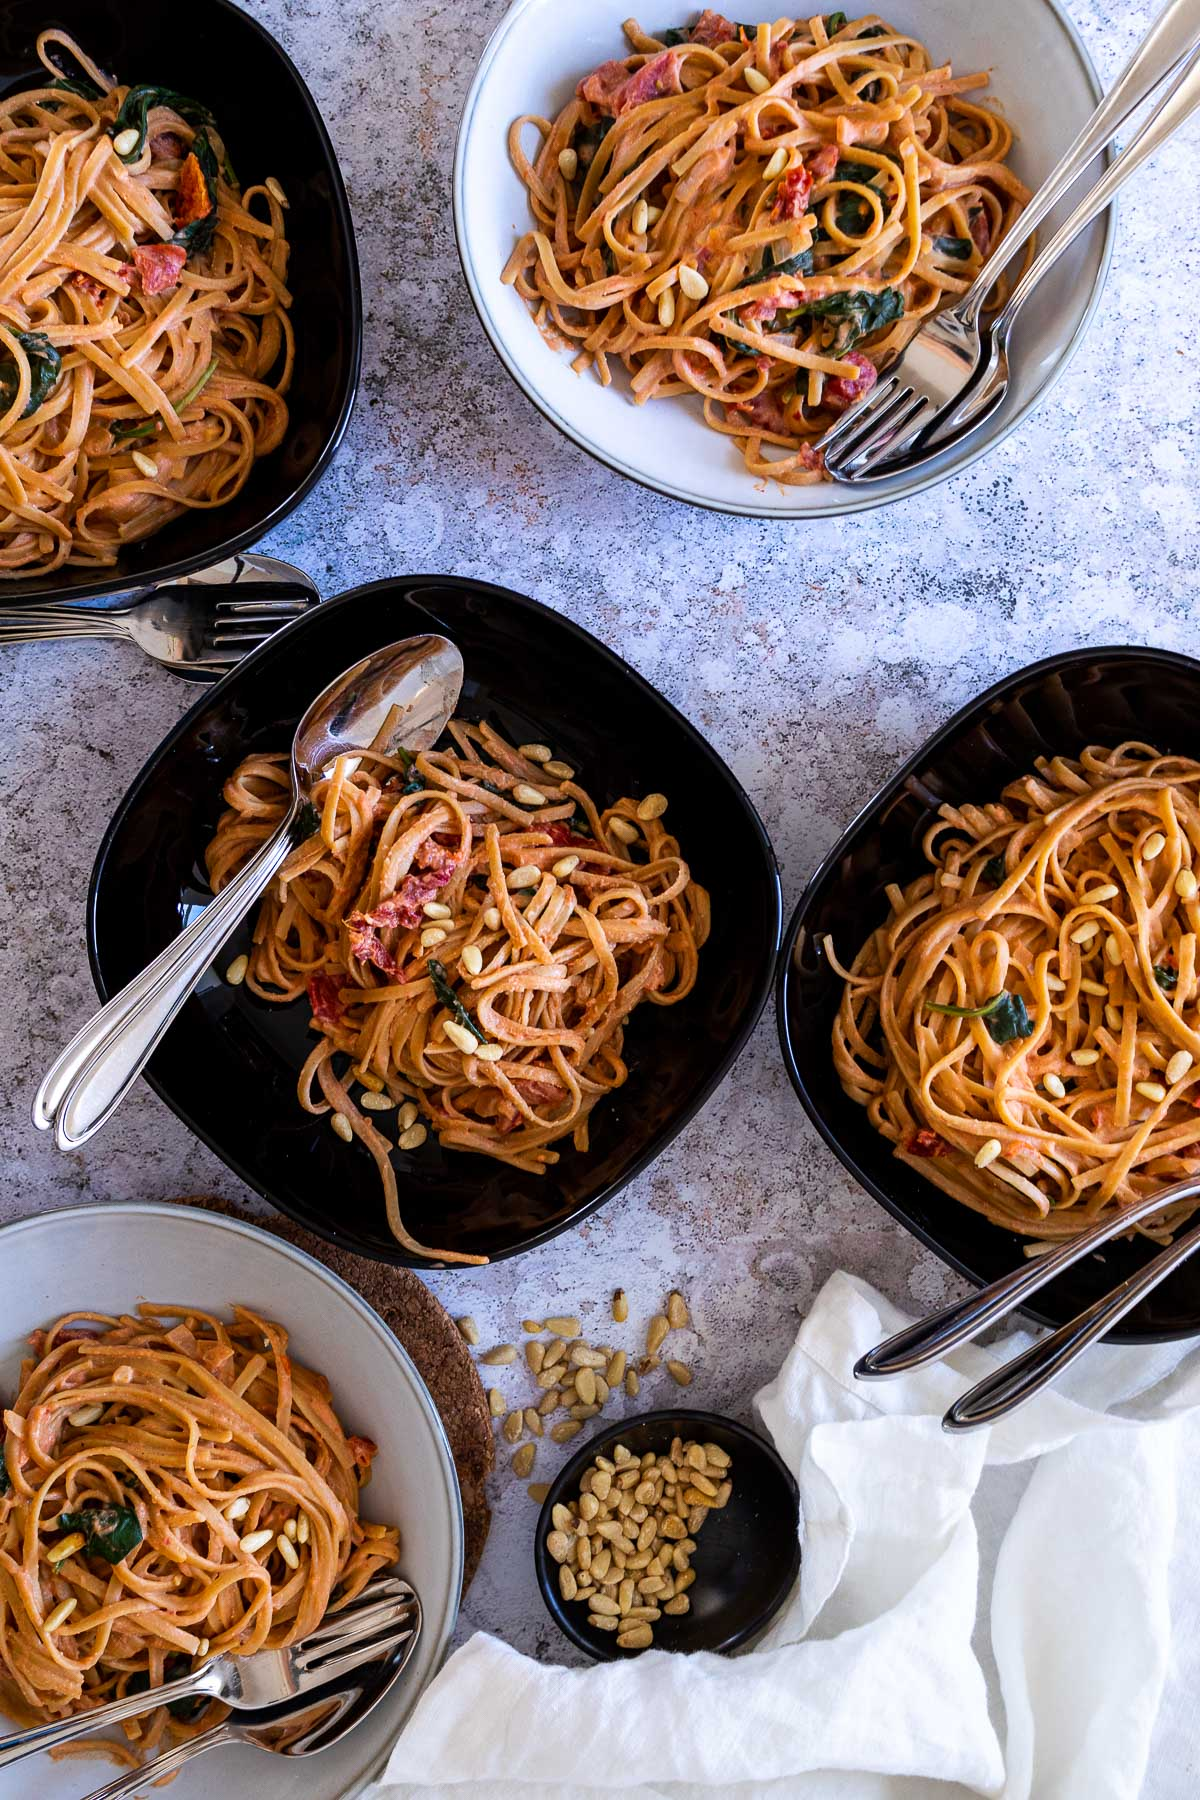 Five bowls with tomato alfredo spaghetti topped with pine nuts